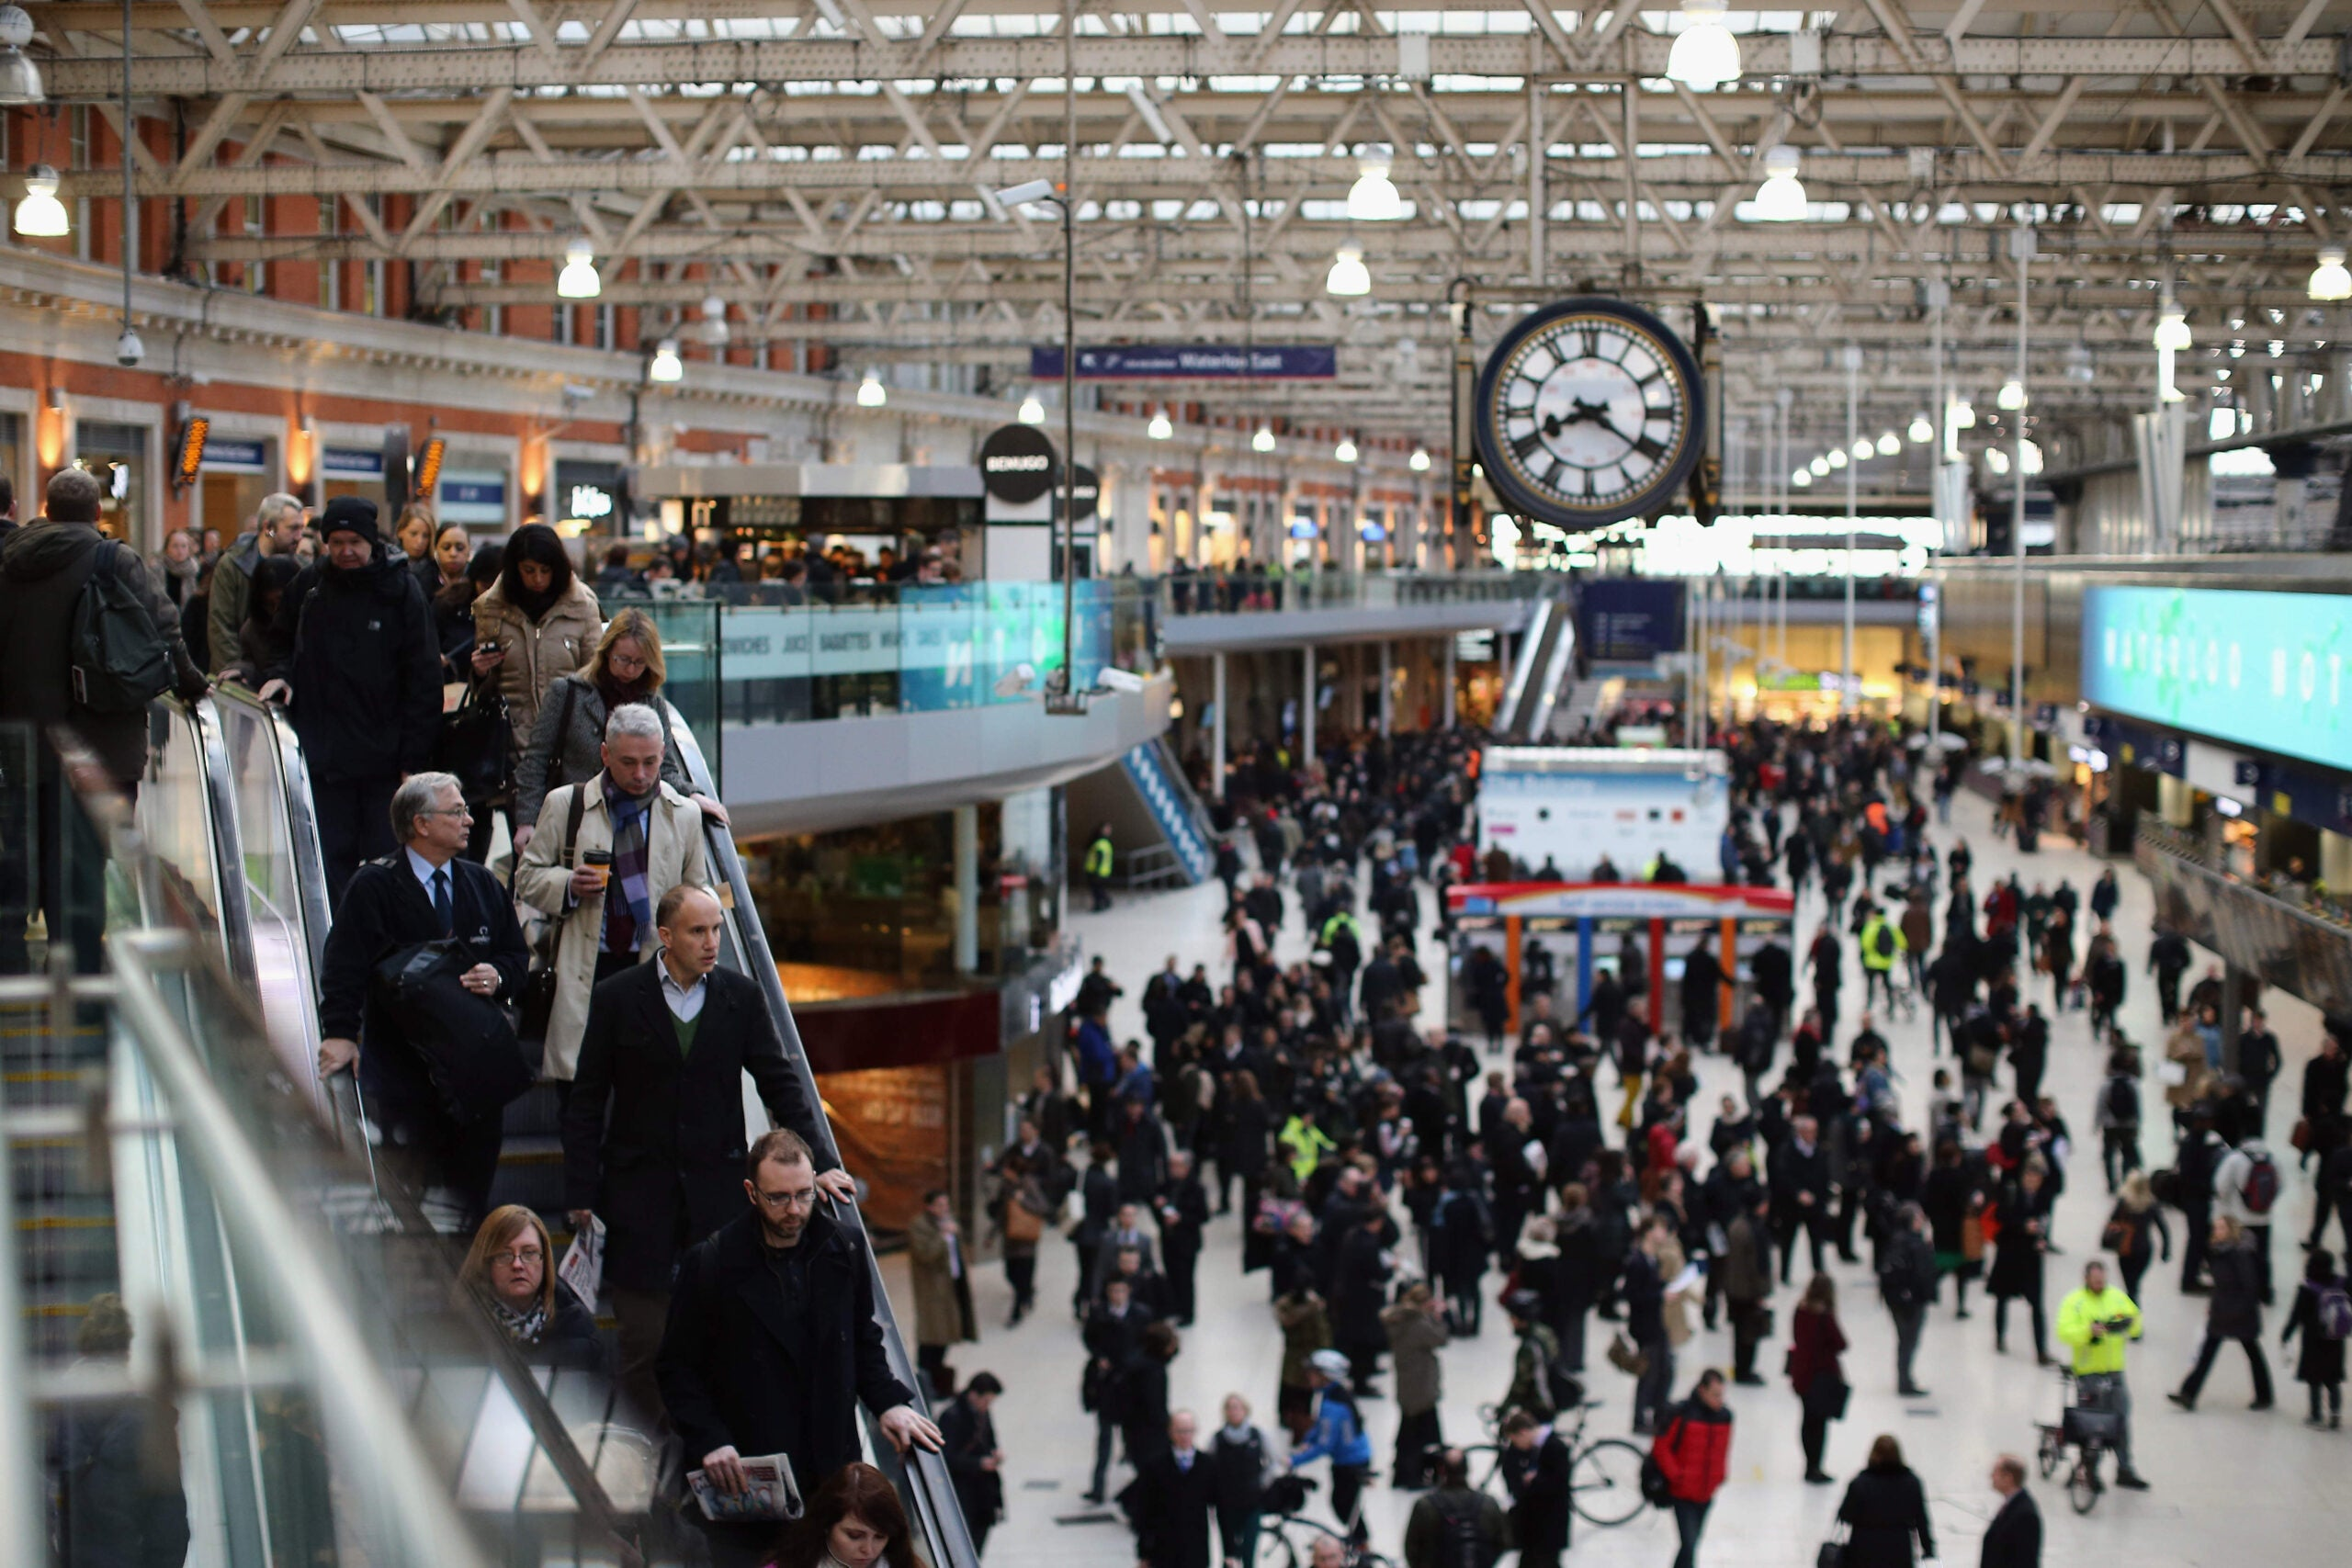 New employment data suggests an approaching uplift for the UK economy